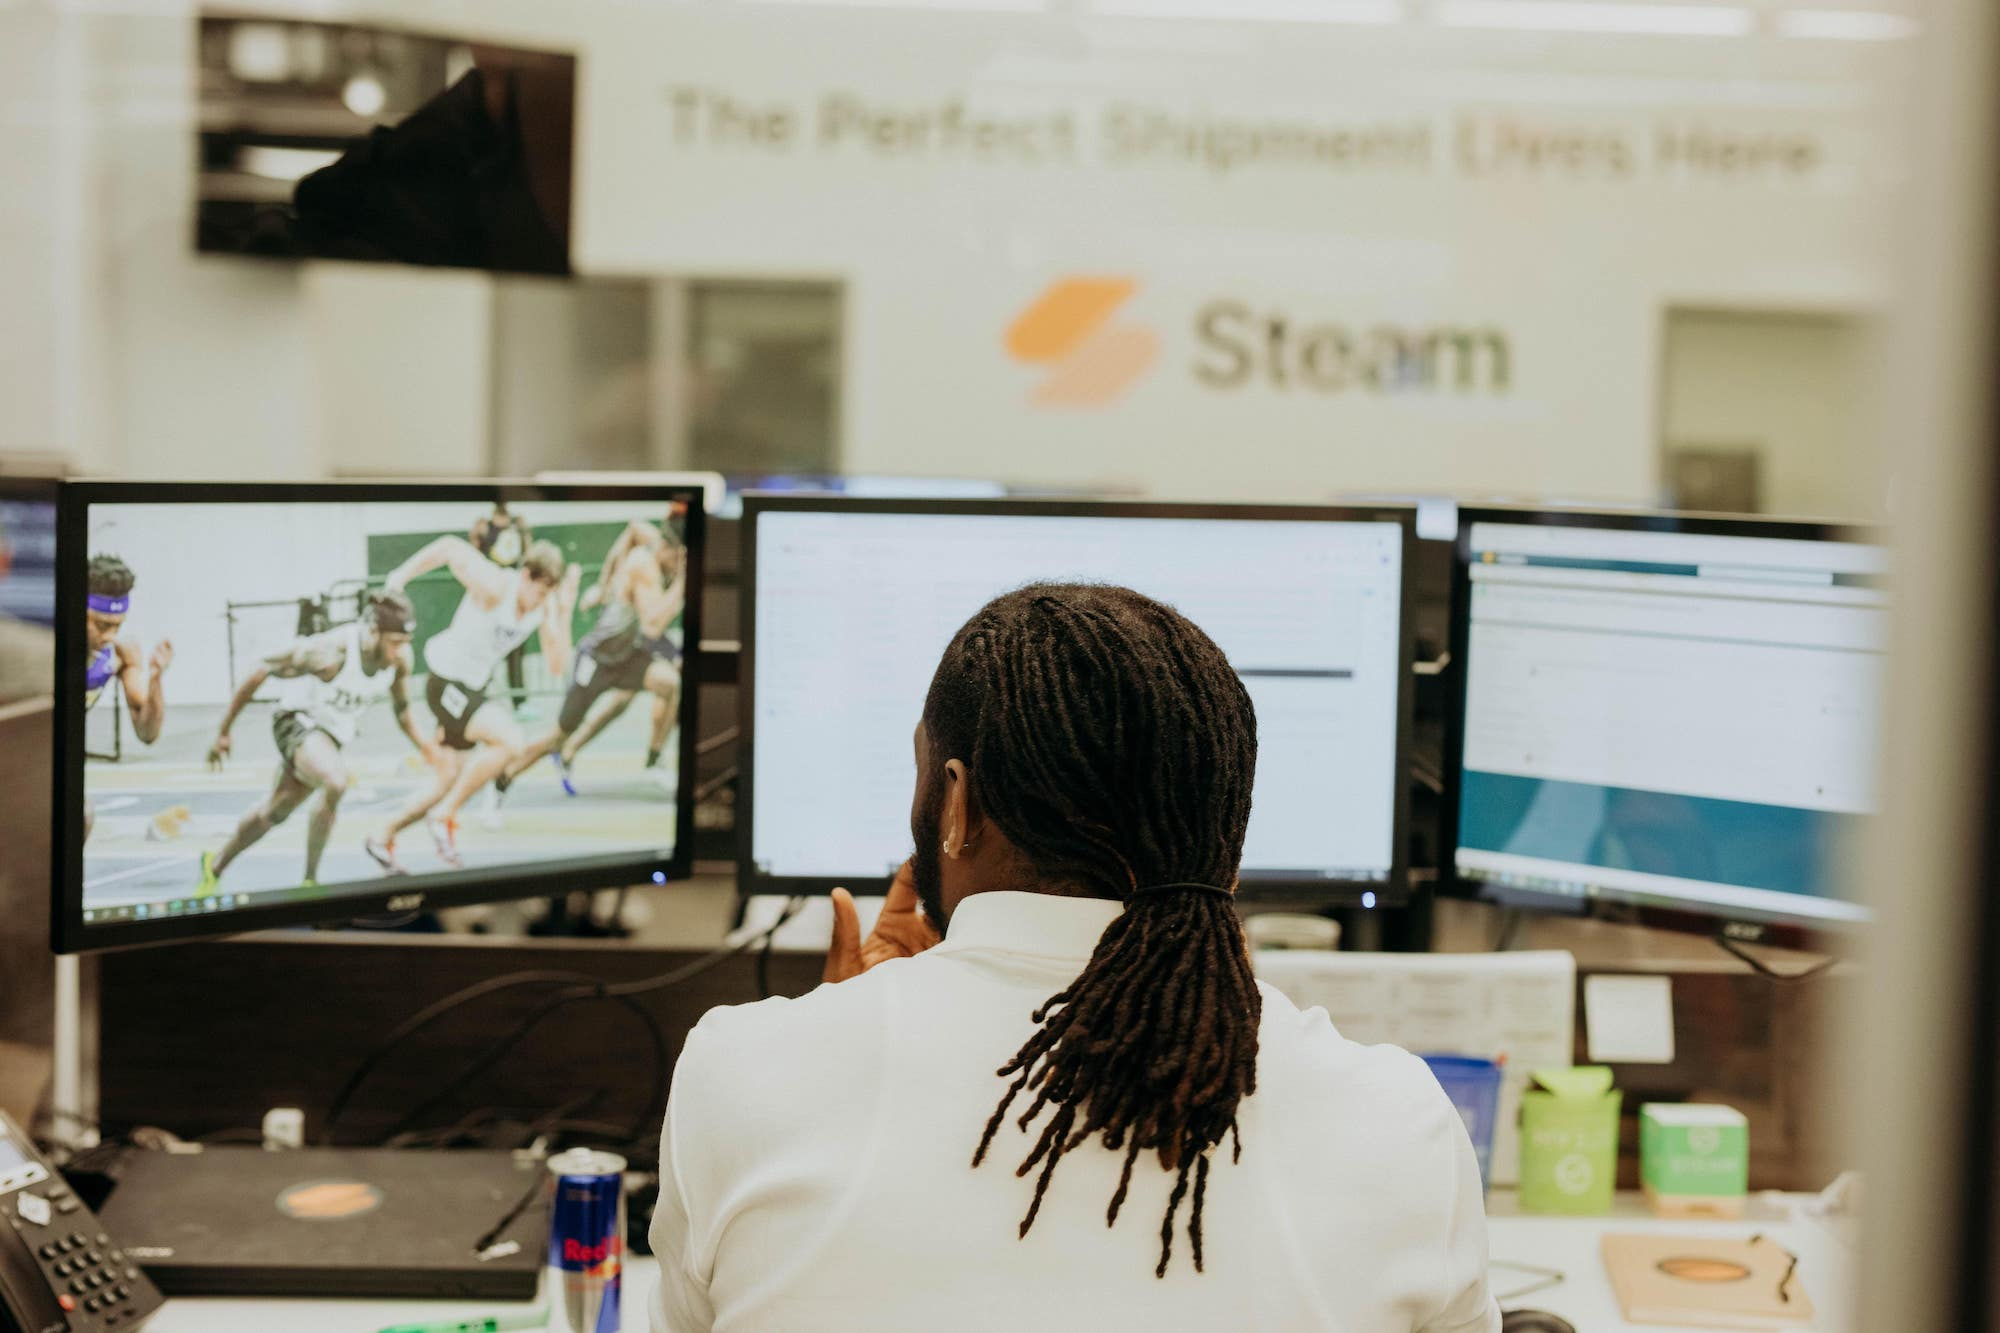 A Steam Logistics employee monitors three screens at his work station.